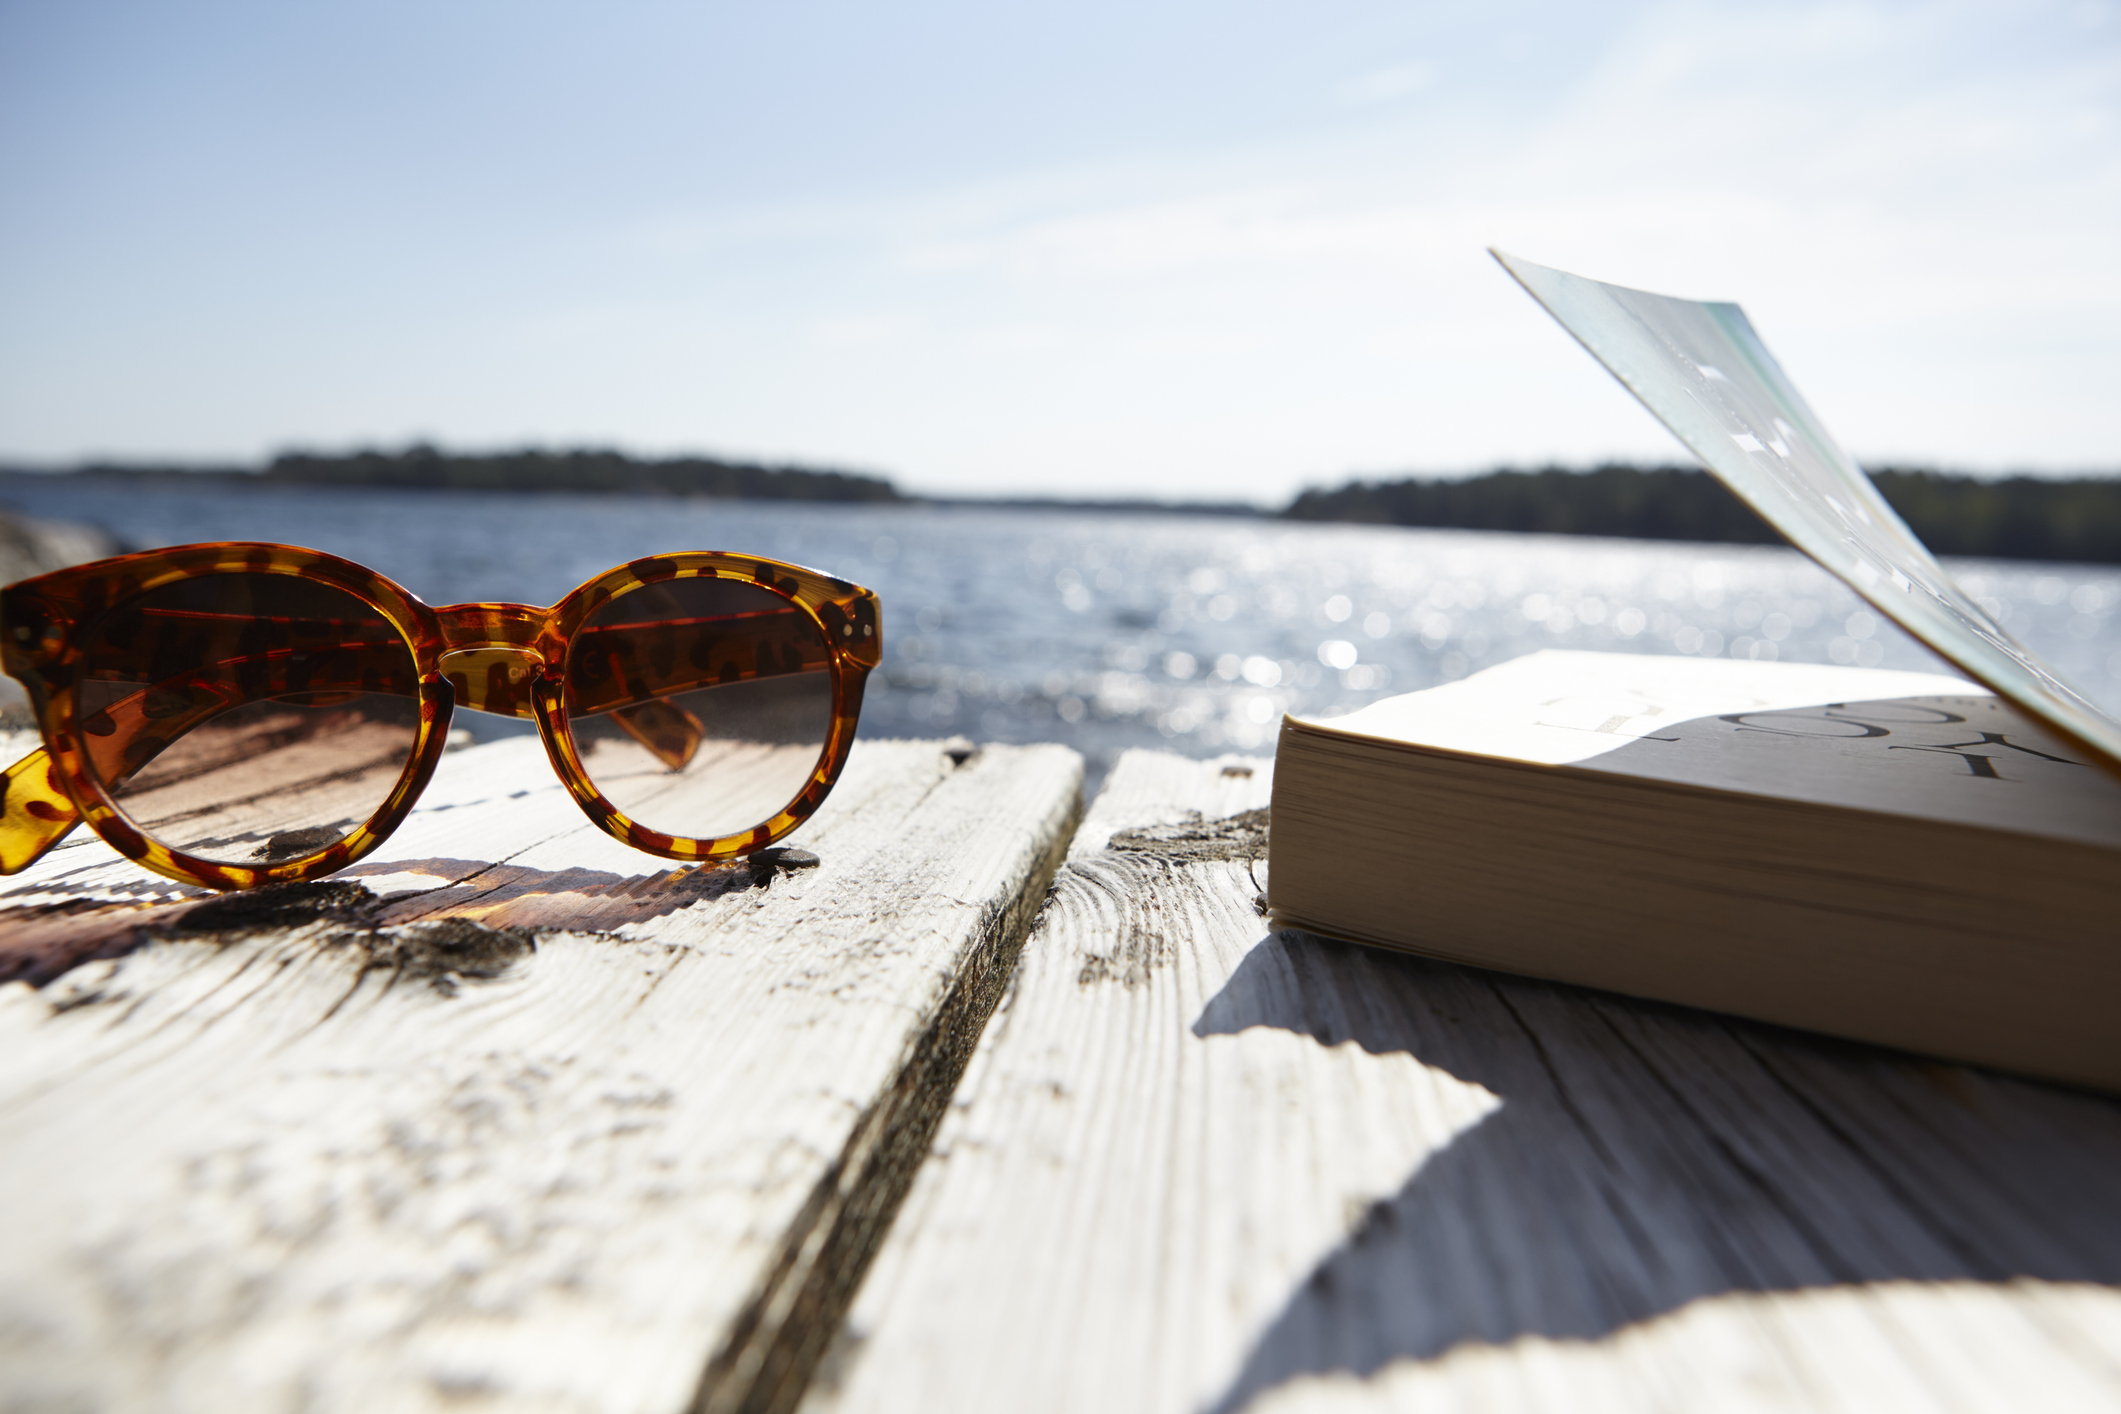 sunglasses-and-book-on-wooden-jetty-close-upjpg